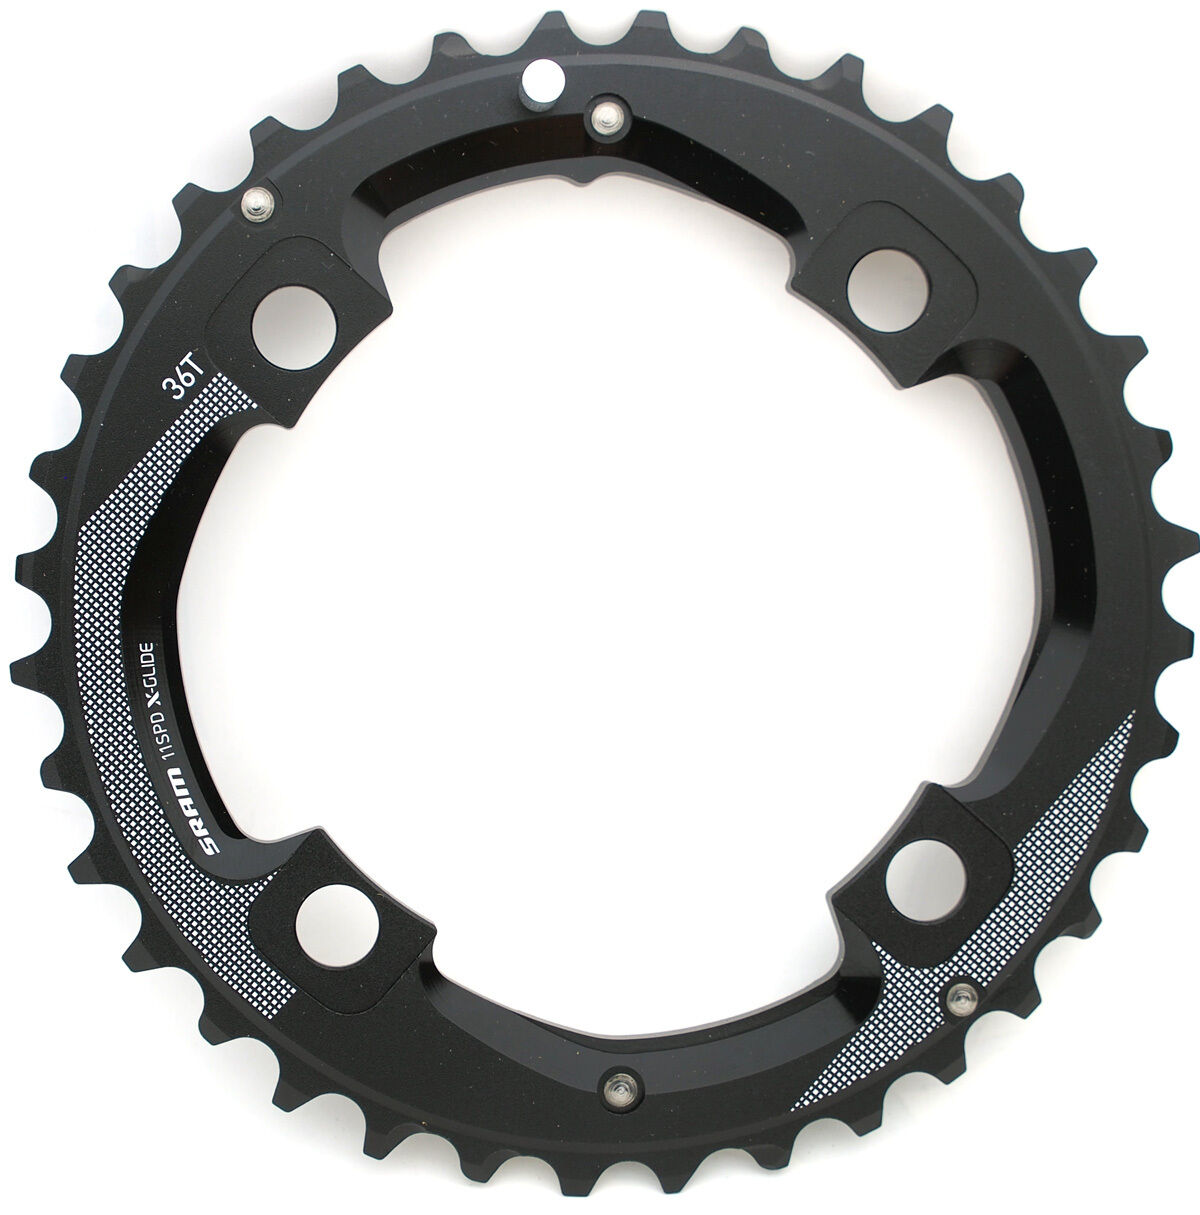 SRAM MTB 36T(Medium Pin)+24T 2x11 Spd Chainring Set BCD 104mm, New In Box